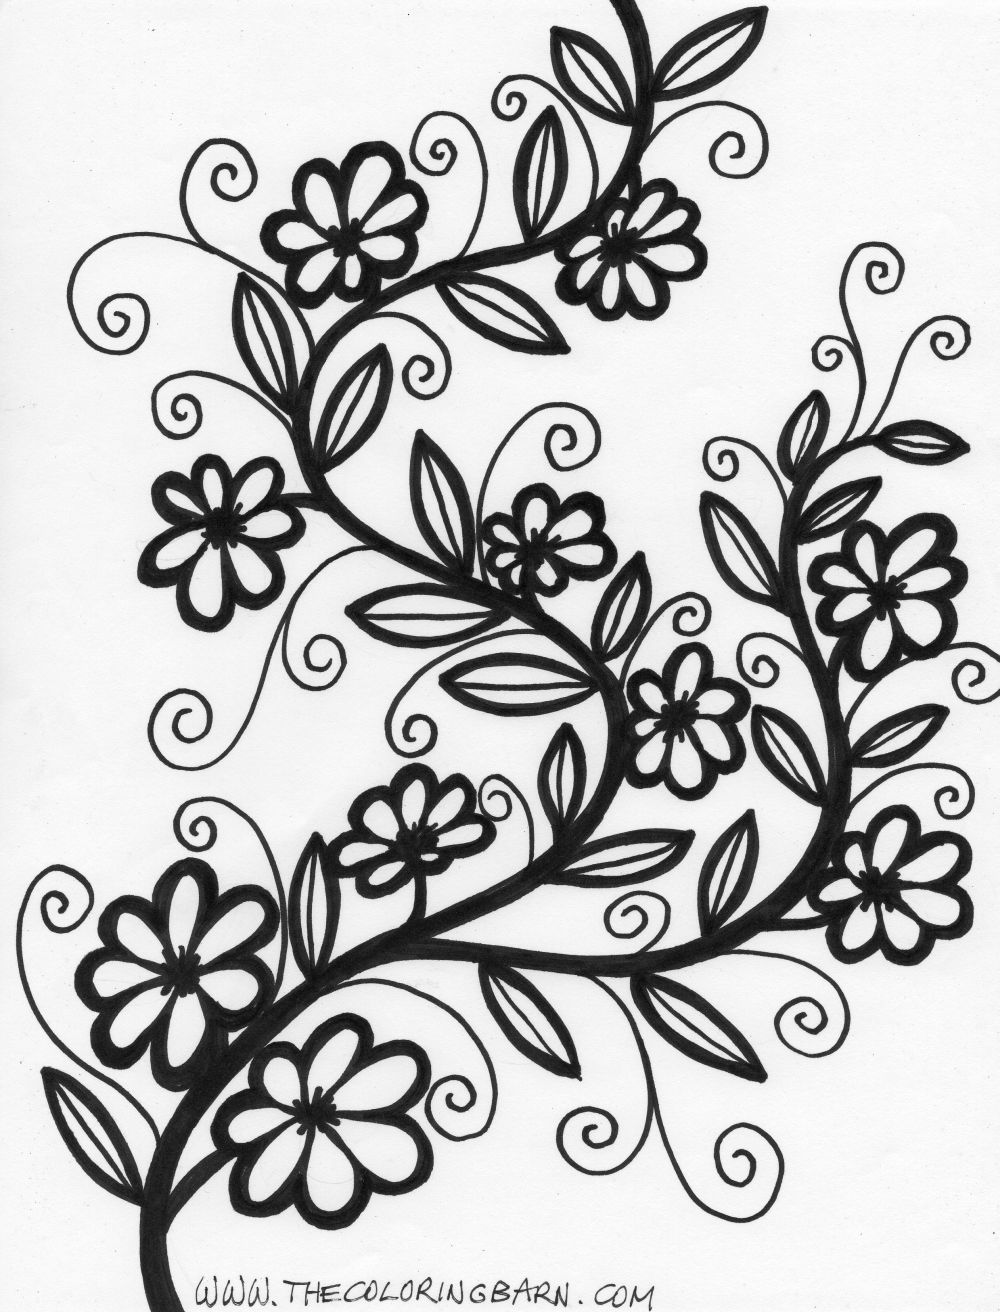 Coloring pages printable of flowers